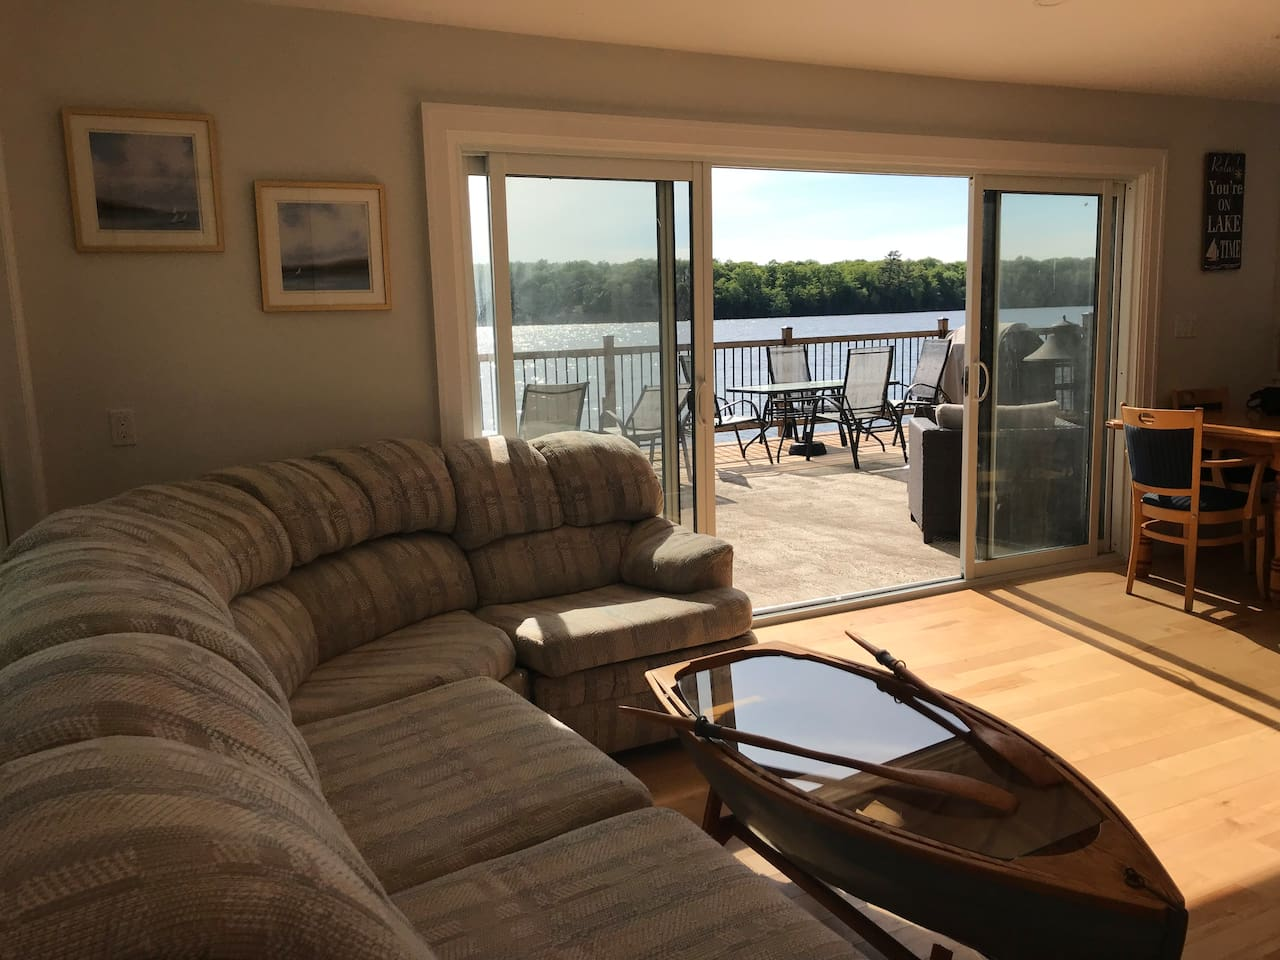 BALSAM LAKE GEM This beauty sits on a point with stunning views from inside the cottage or from the huge patio that cantilevers over the water Park your boat at our dock or use the canoe or tandem kayak provided Clear sandy bottom for swimming